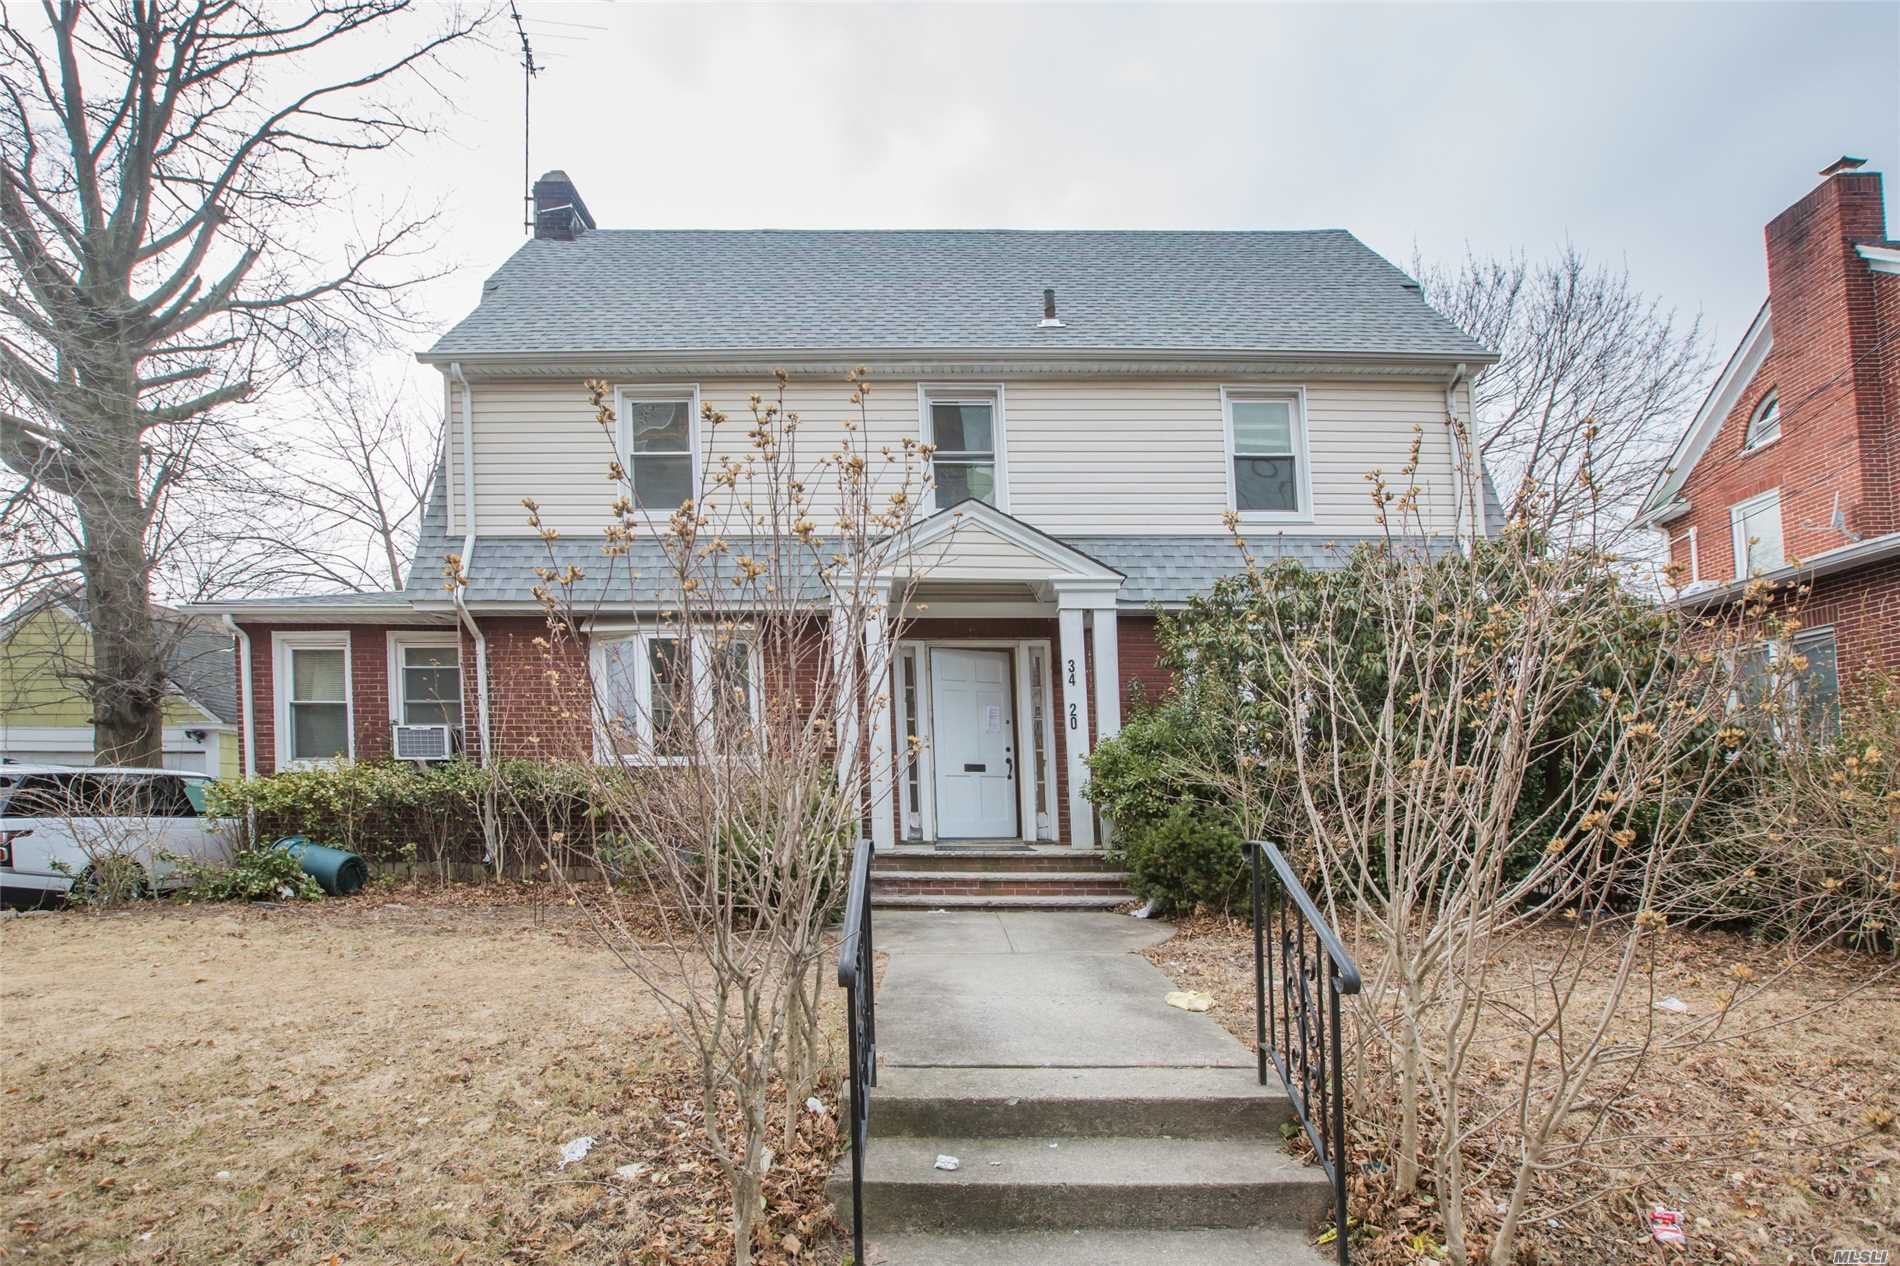 Beautiful Large 5 Br, Huge Lr. Eik, Sun Room, Renovated 31/2 Ba, Hardwood Floors,  Big Backyard. Separate Entrance, One Block Away From Northern Blvd,  School District# 25. No Pets Allowed, Must Have Credit Report And Proof Of Income.